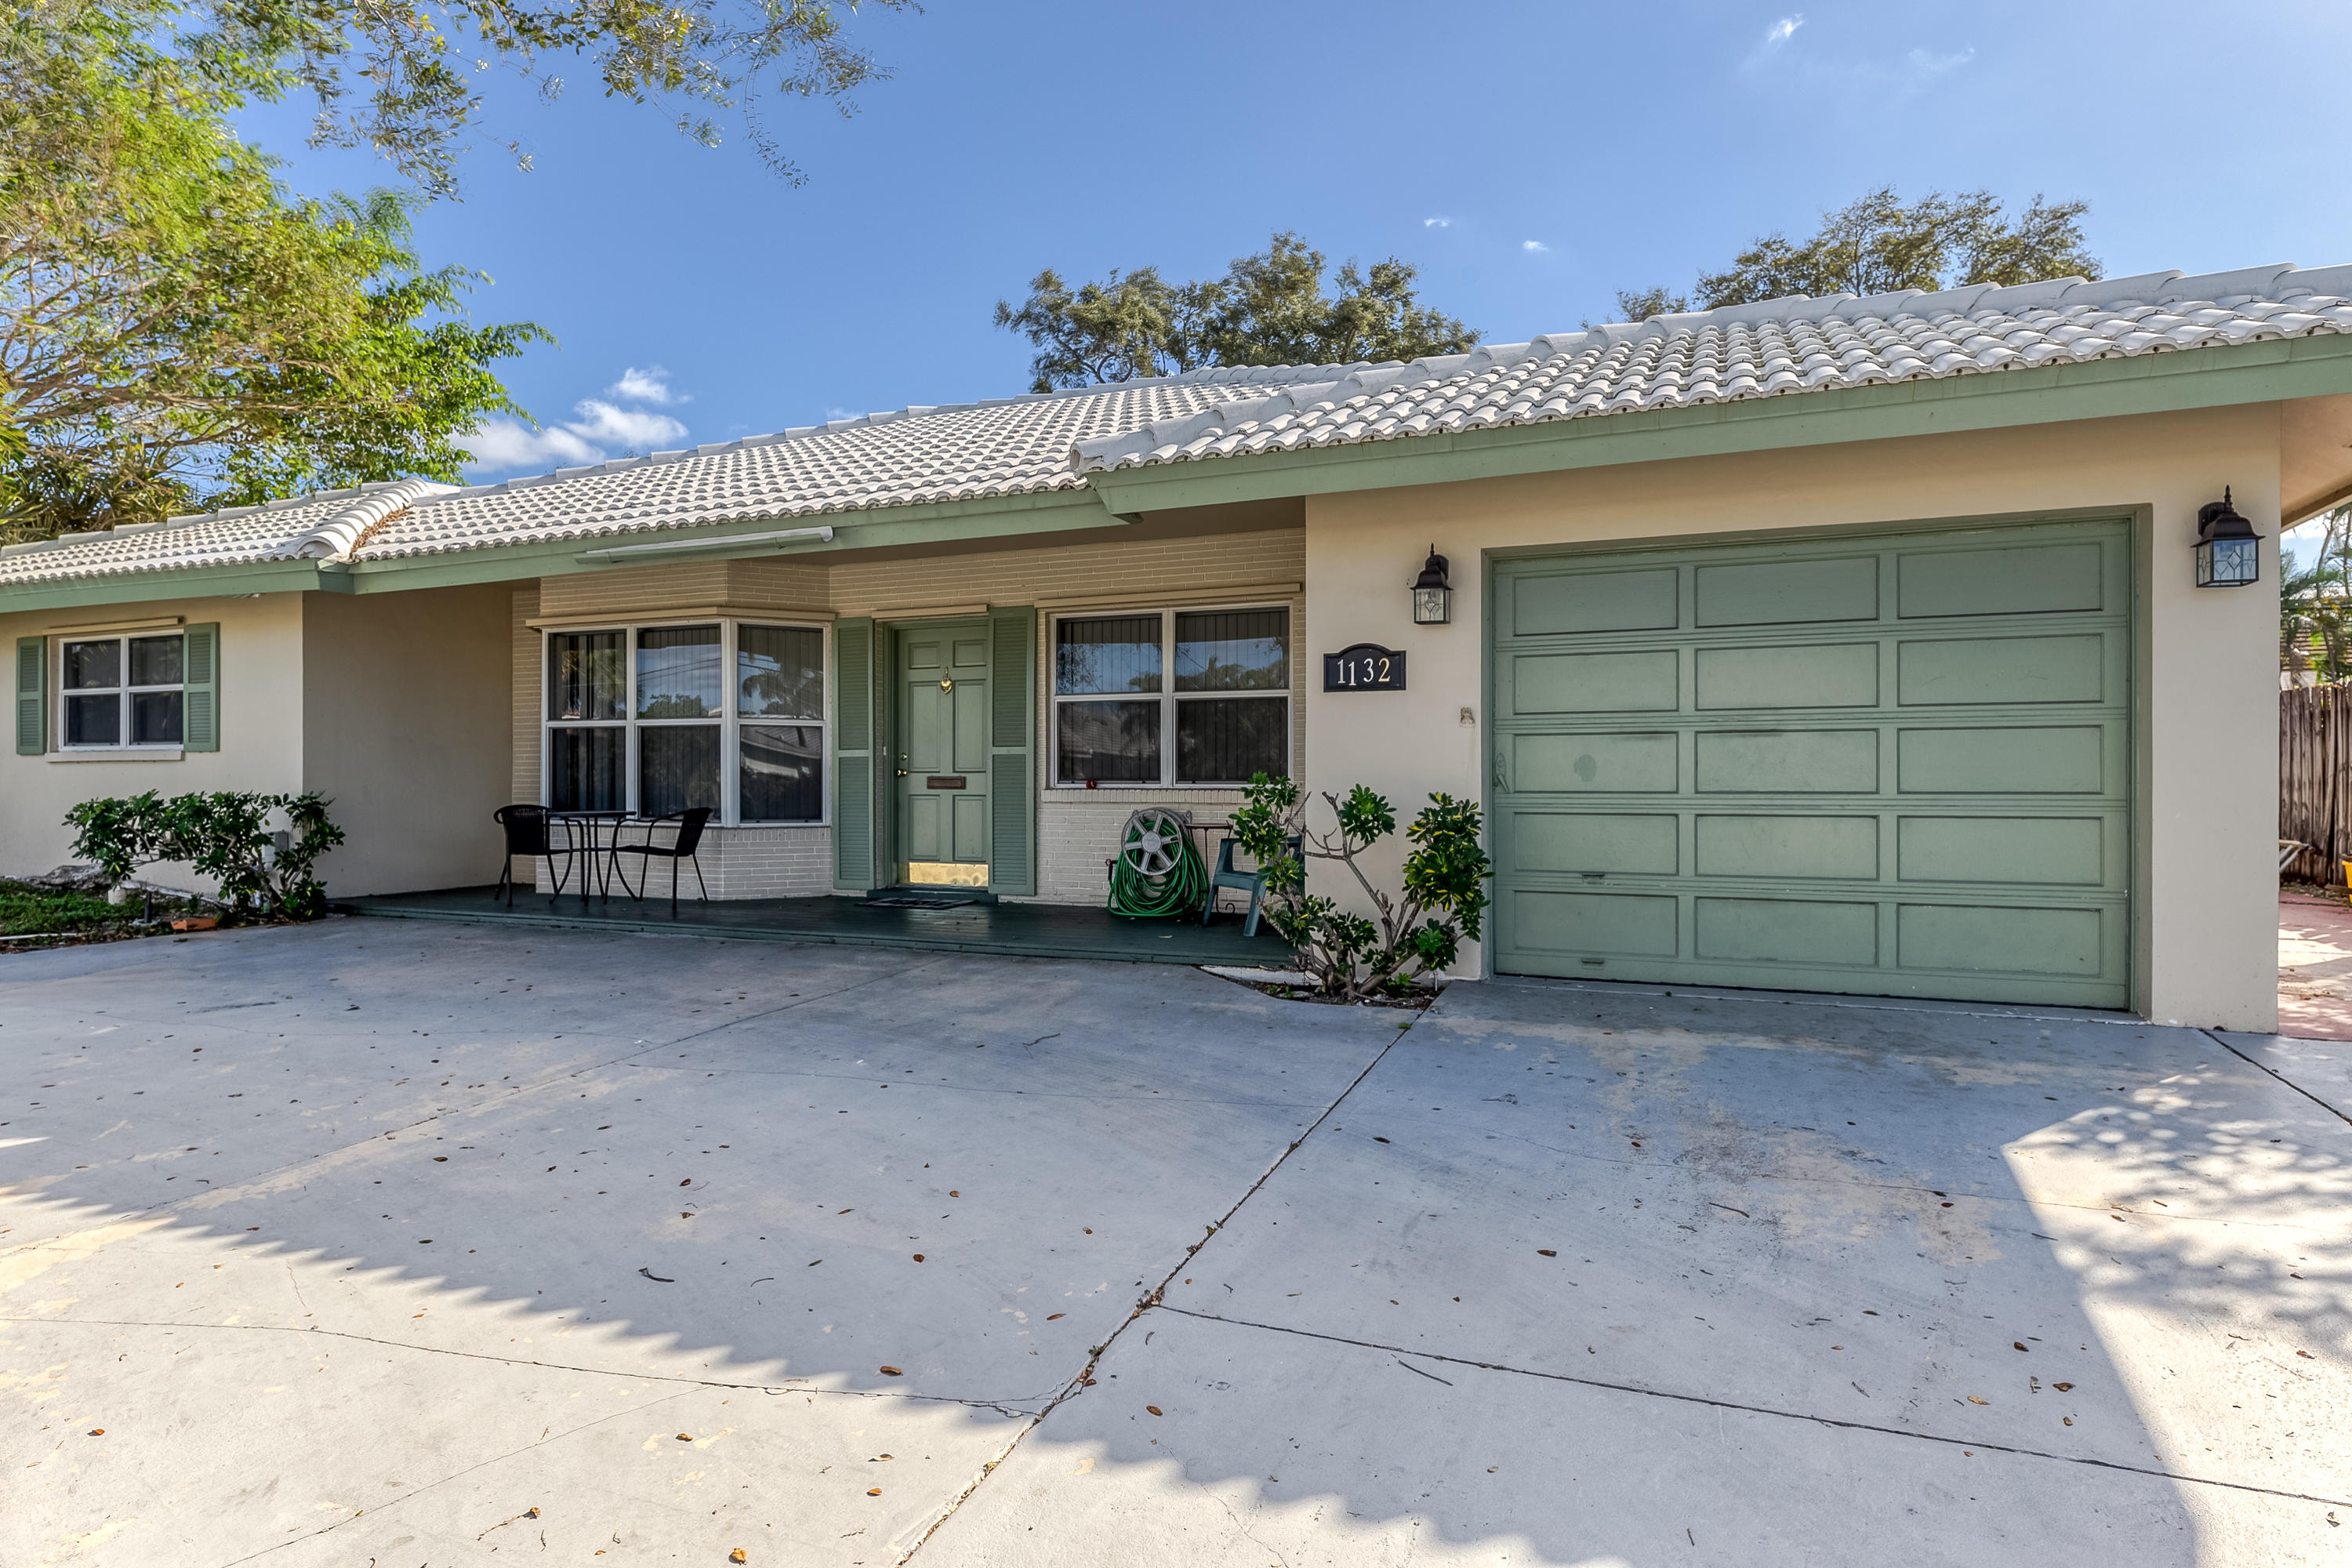 HOME NEEDS WORK. LOCATED IN SOUGHT AFTER EAST BOCA. BOCA SQUARE OFFERS EXCELLENT SCHOOLS AND CLOSE TO BEACHES AND DOWNTOWN LIVING OF BOCA. THIS HOME IS IN NEED OF RENOVATION .IT OFFERS 3 BED / 3BA, A GUEST HOUSE WITH 1 BED / 1BA. GREAT FOR INVESTORS OR SOMEONE WANTING TO REDO.